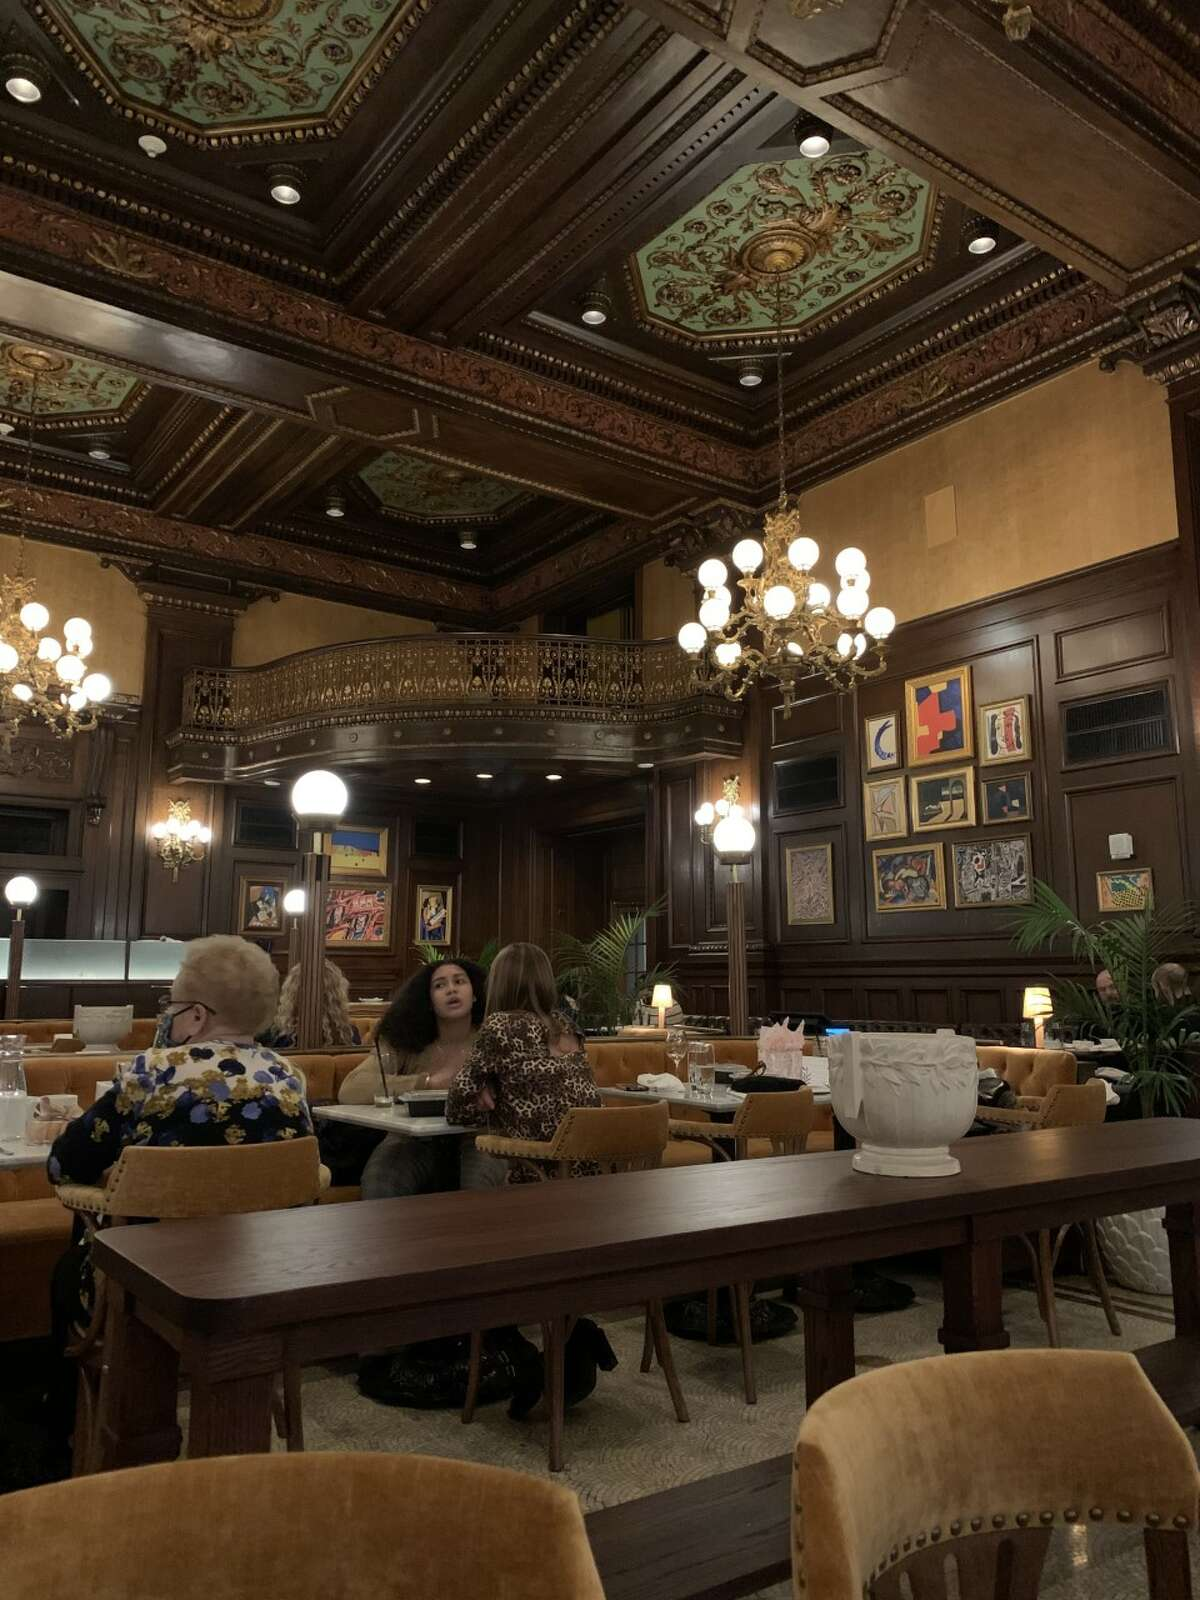 Le Cavalier is an in-house French brasserie at the Hotel Du Pont in Wilmington, Del.